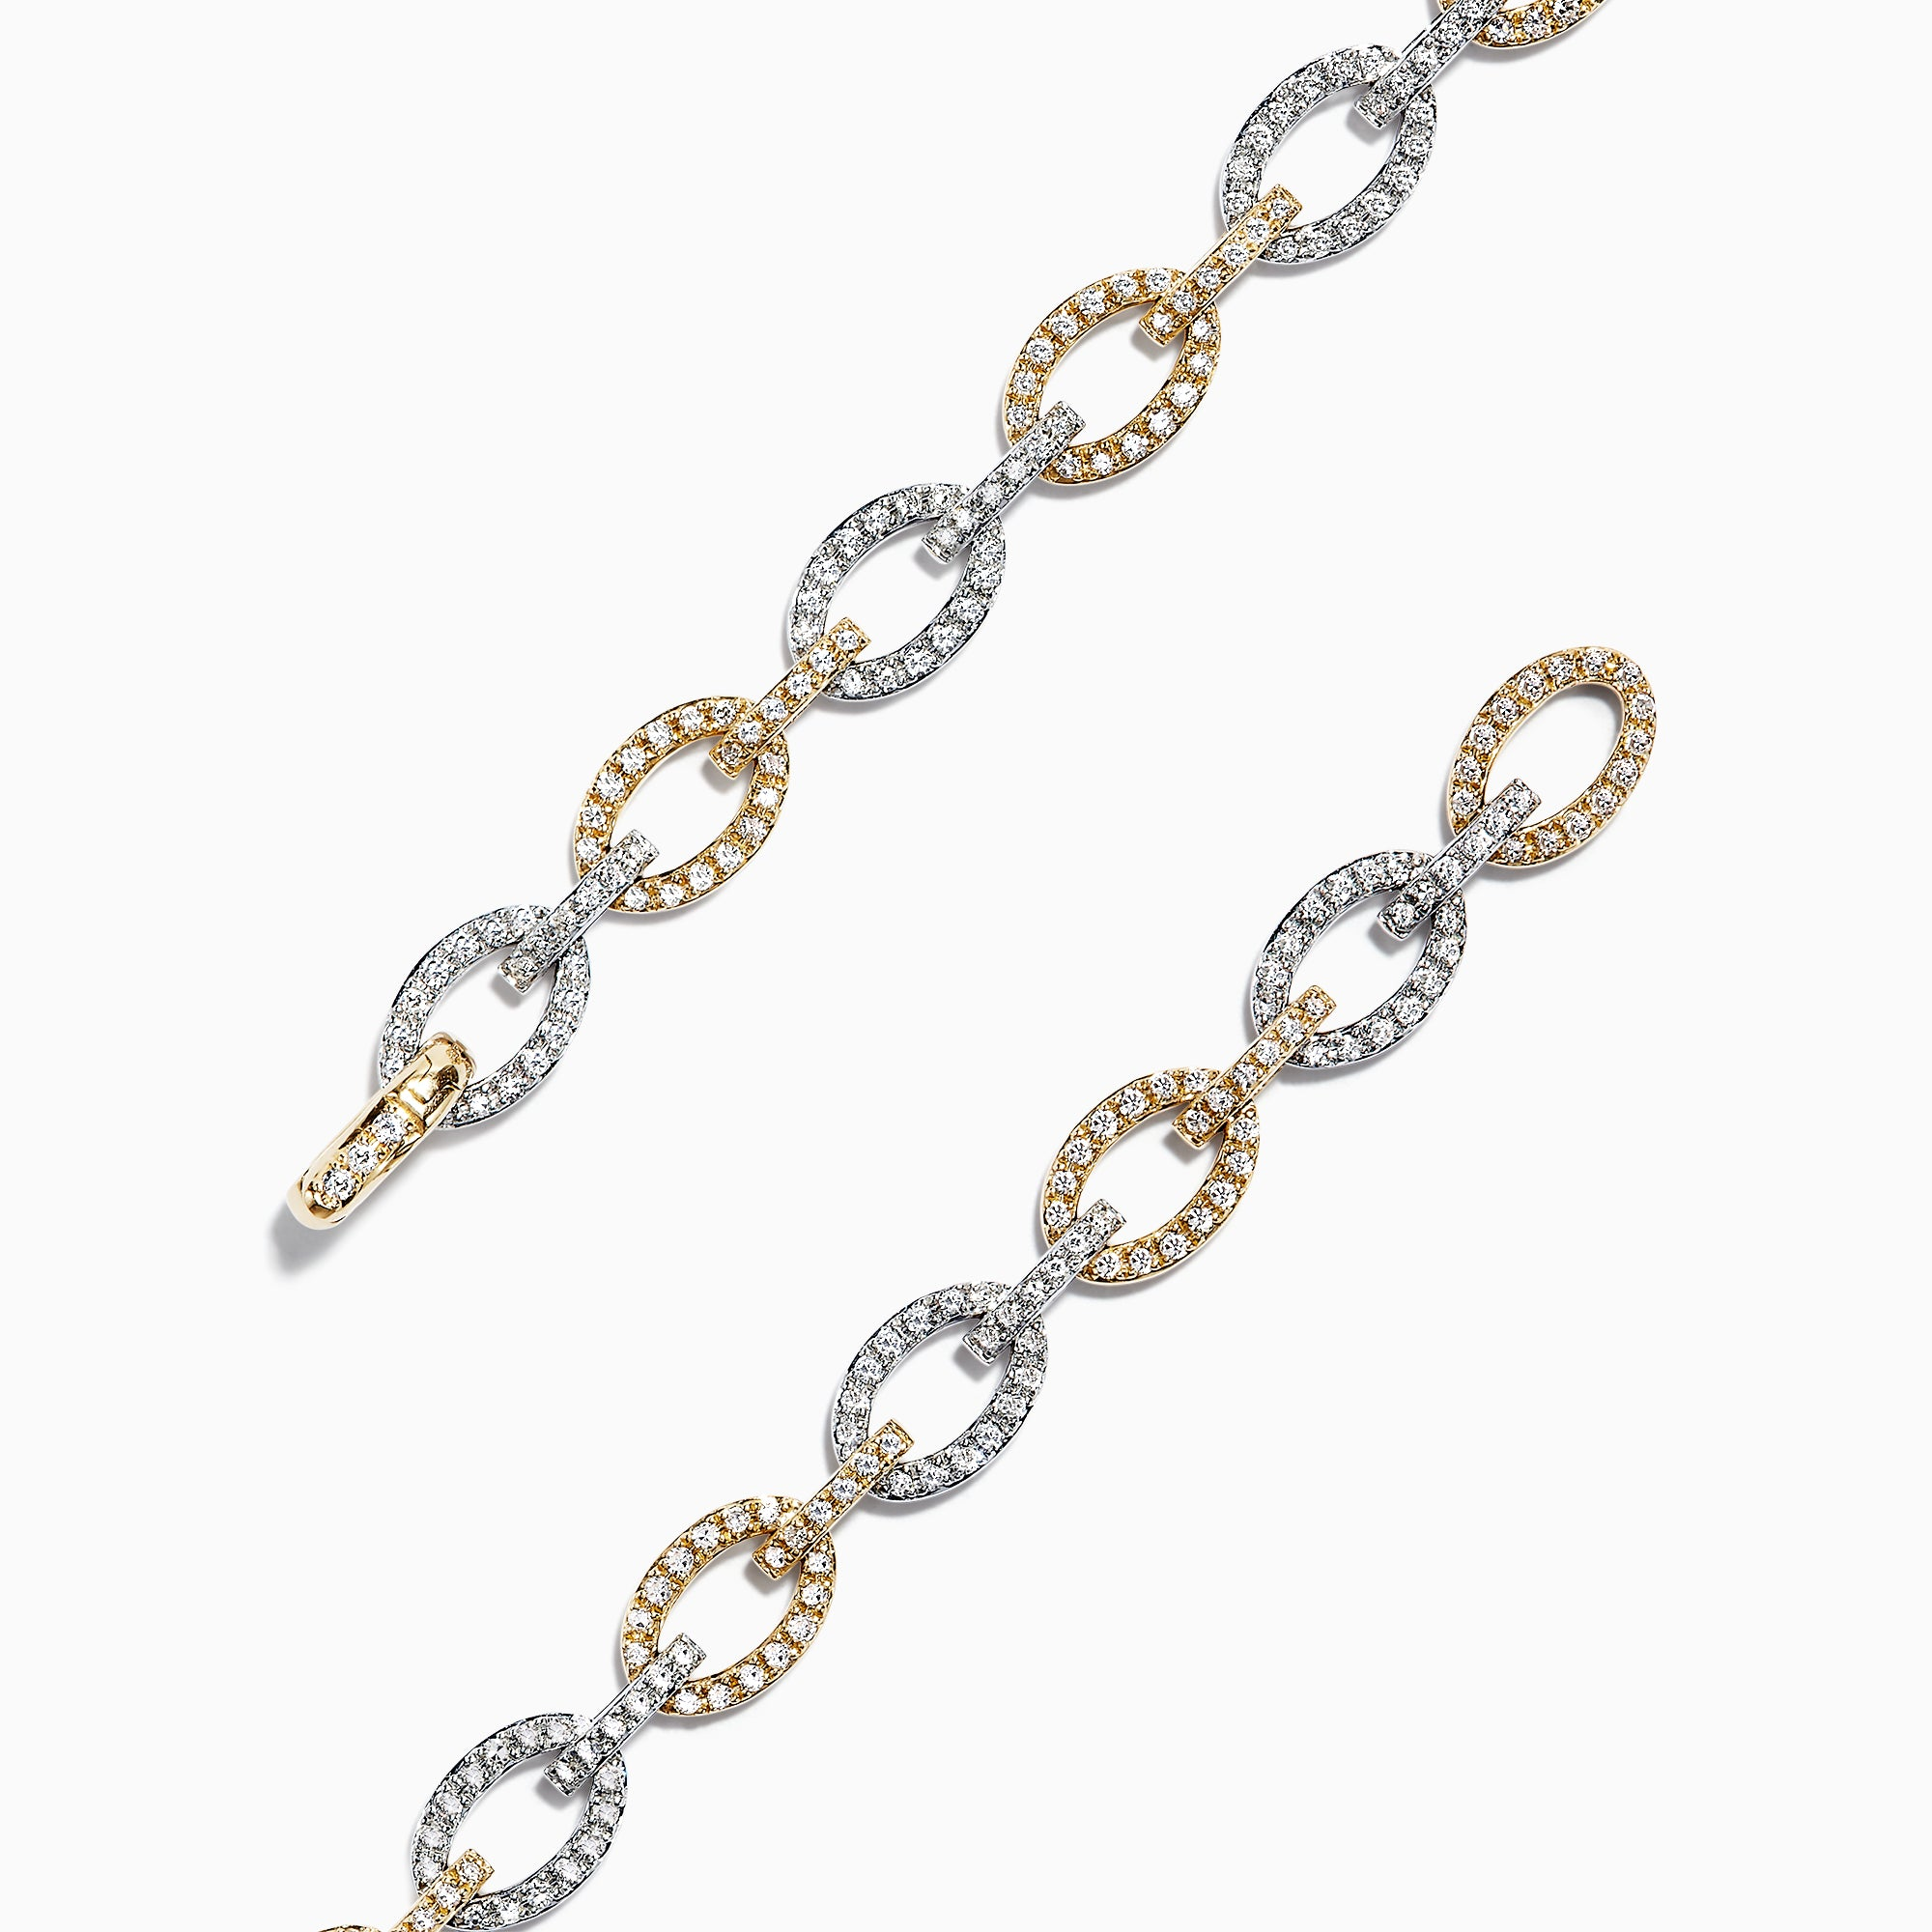 Effy Duo 14K 2 Tone Gold Diamond Link Tennis Bracelet, 1.52 TCW